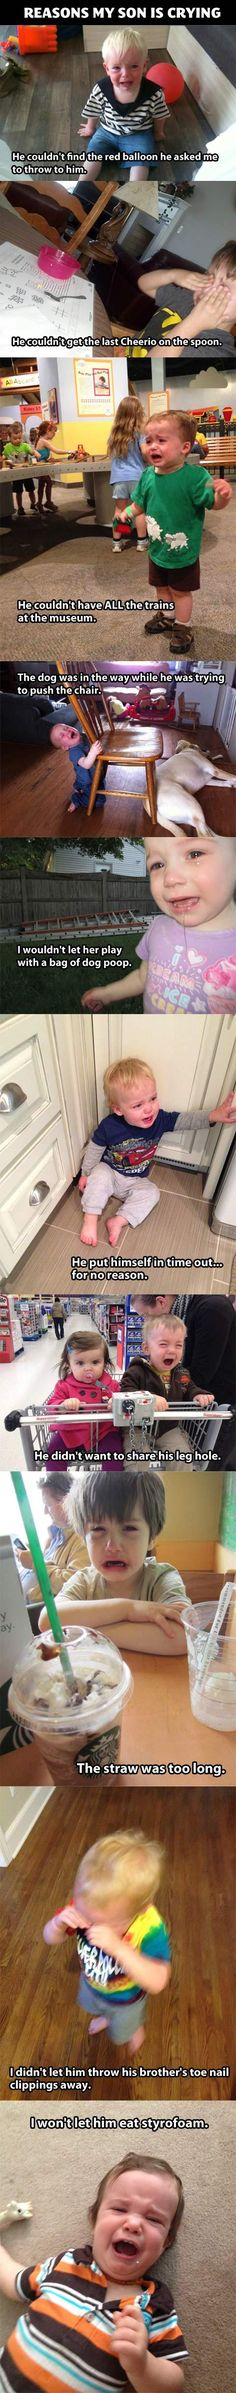 """Reasons My Son Is Crying…pretty sure we've experienced all of these. ~~Haha """"its funny cause its true"""" lol Funny Quotes, Funny Memes, Haha Funny, Funny Stuff, Freaking Hilarious, Super Funny, Dog Stuff, Random Stuff, Lol So True"""